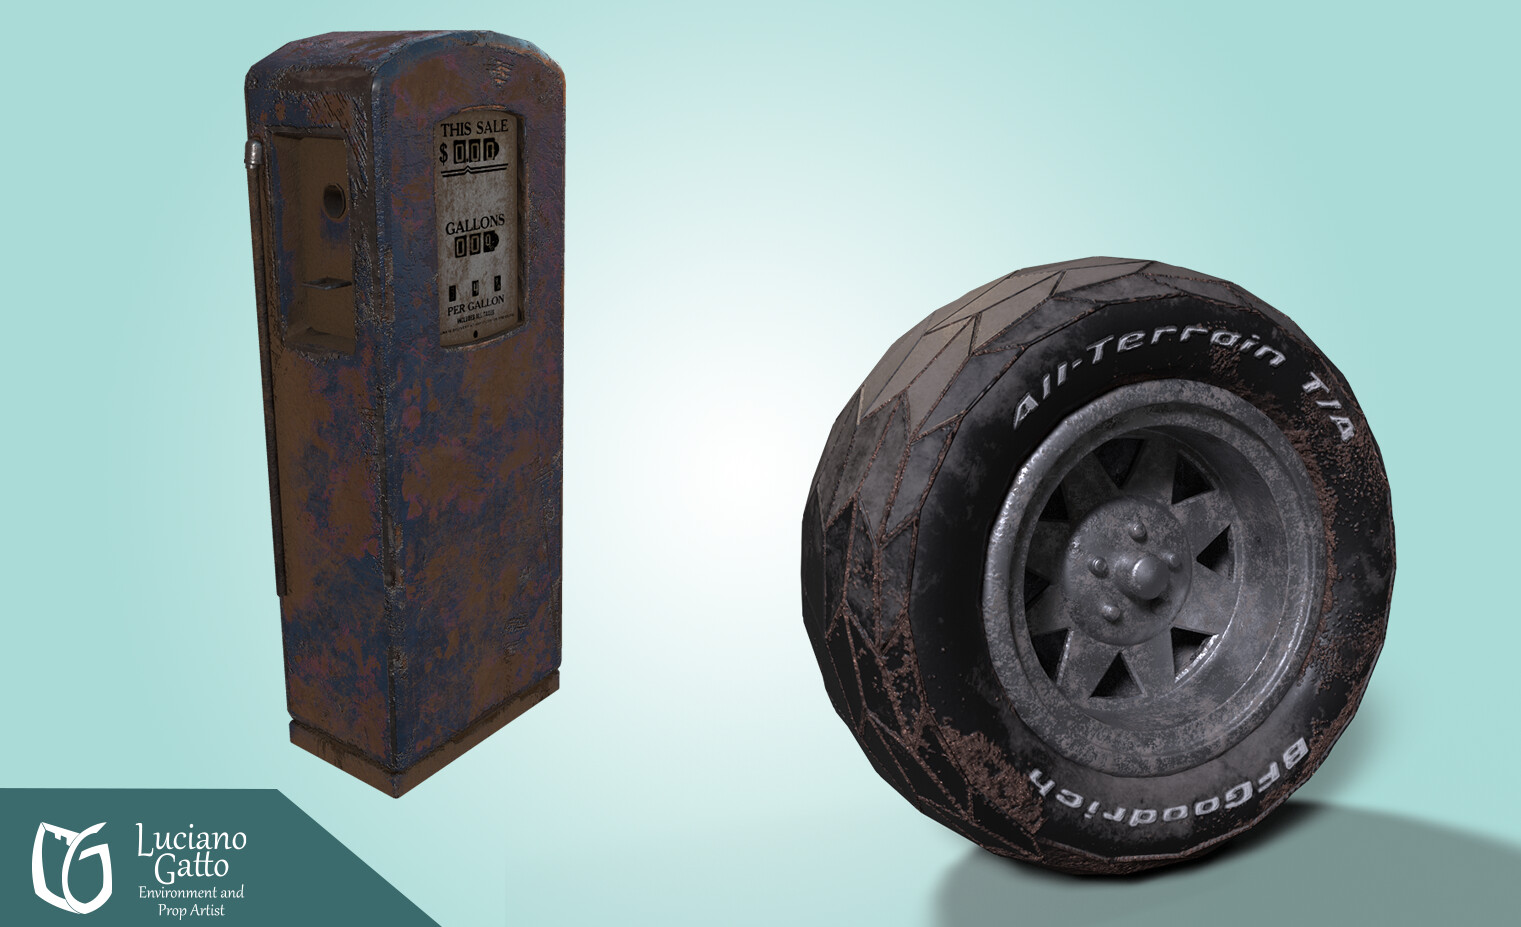 Wheel from the V8 Interceptor and Gas Pump